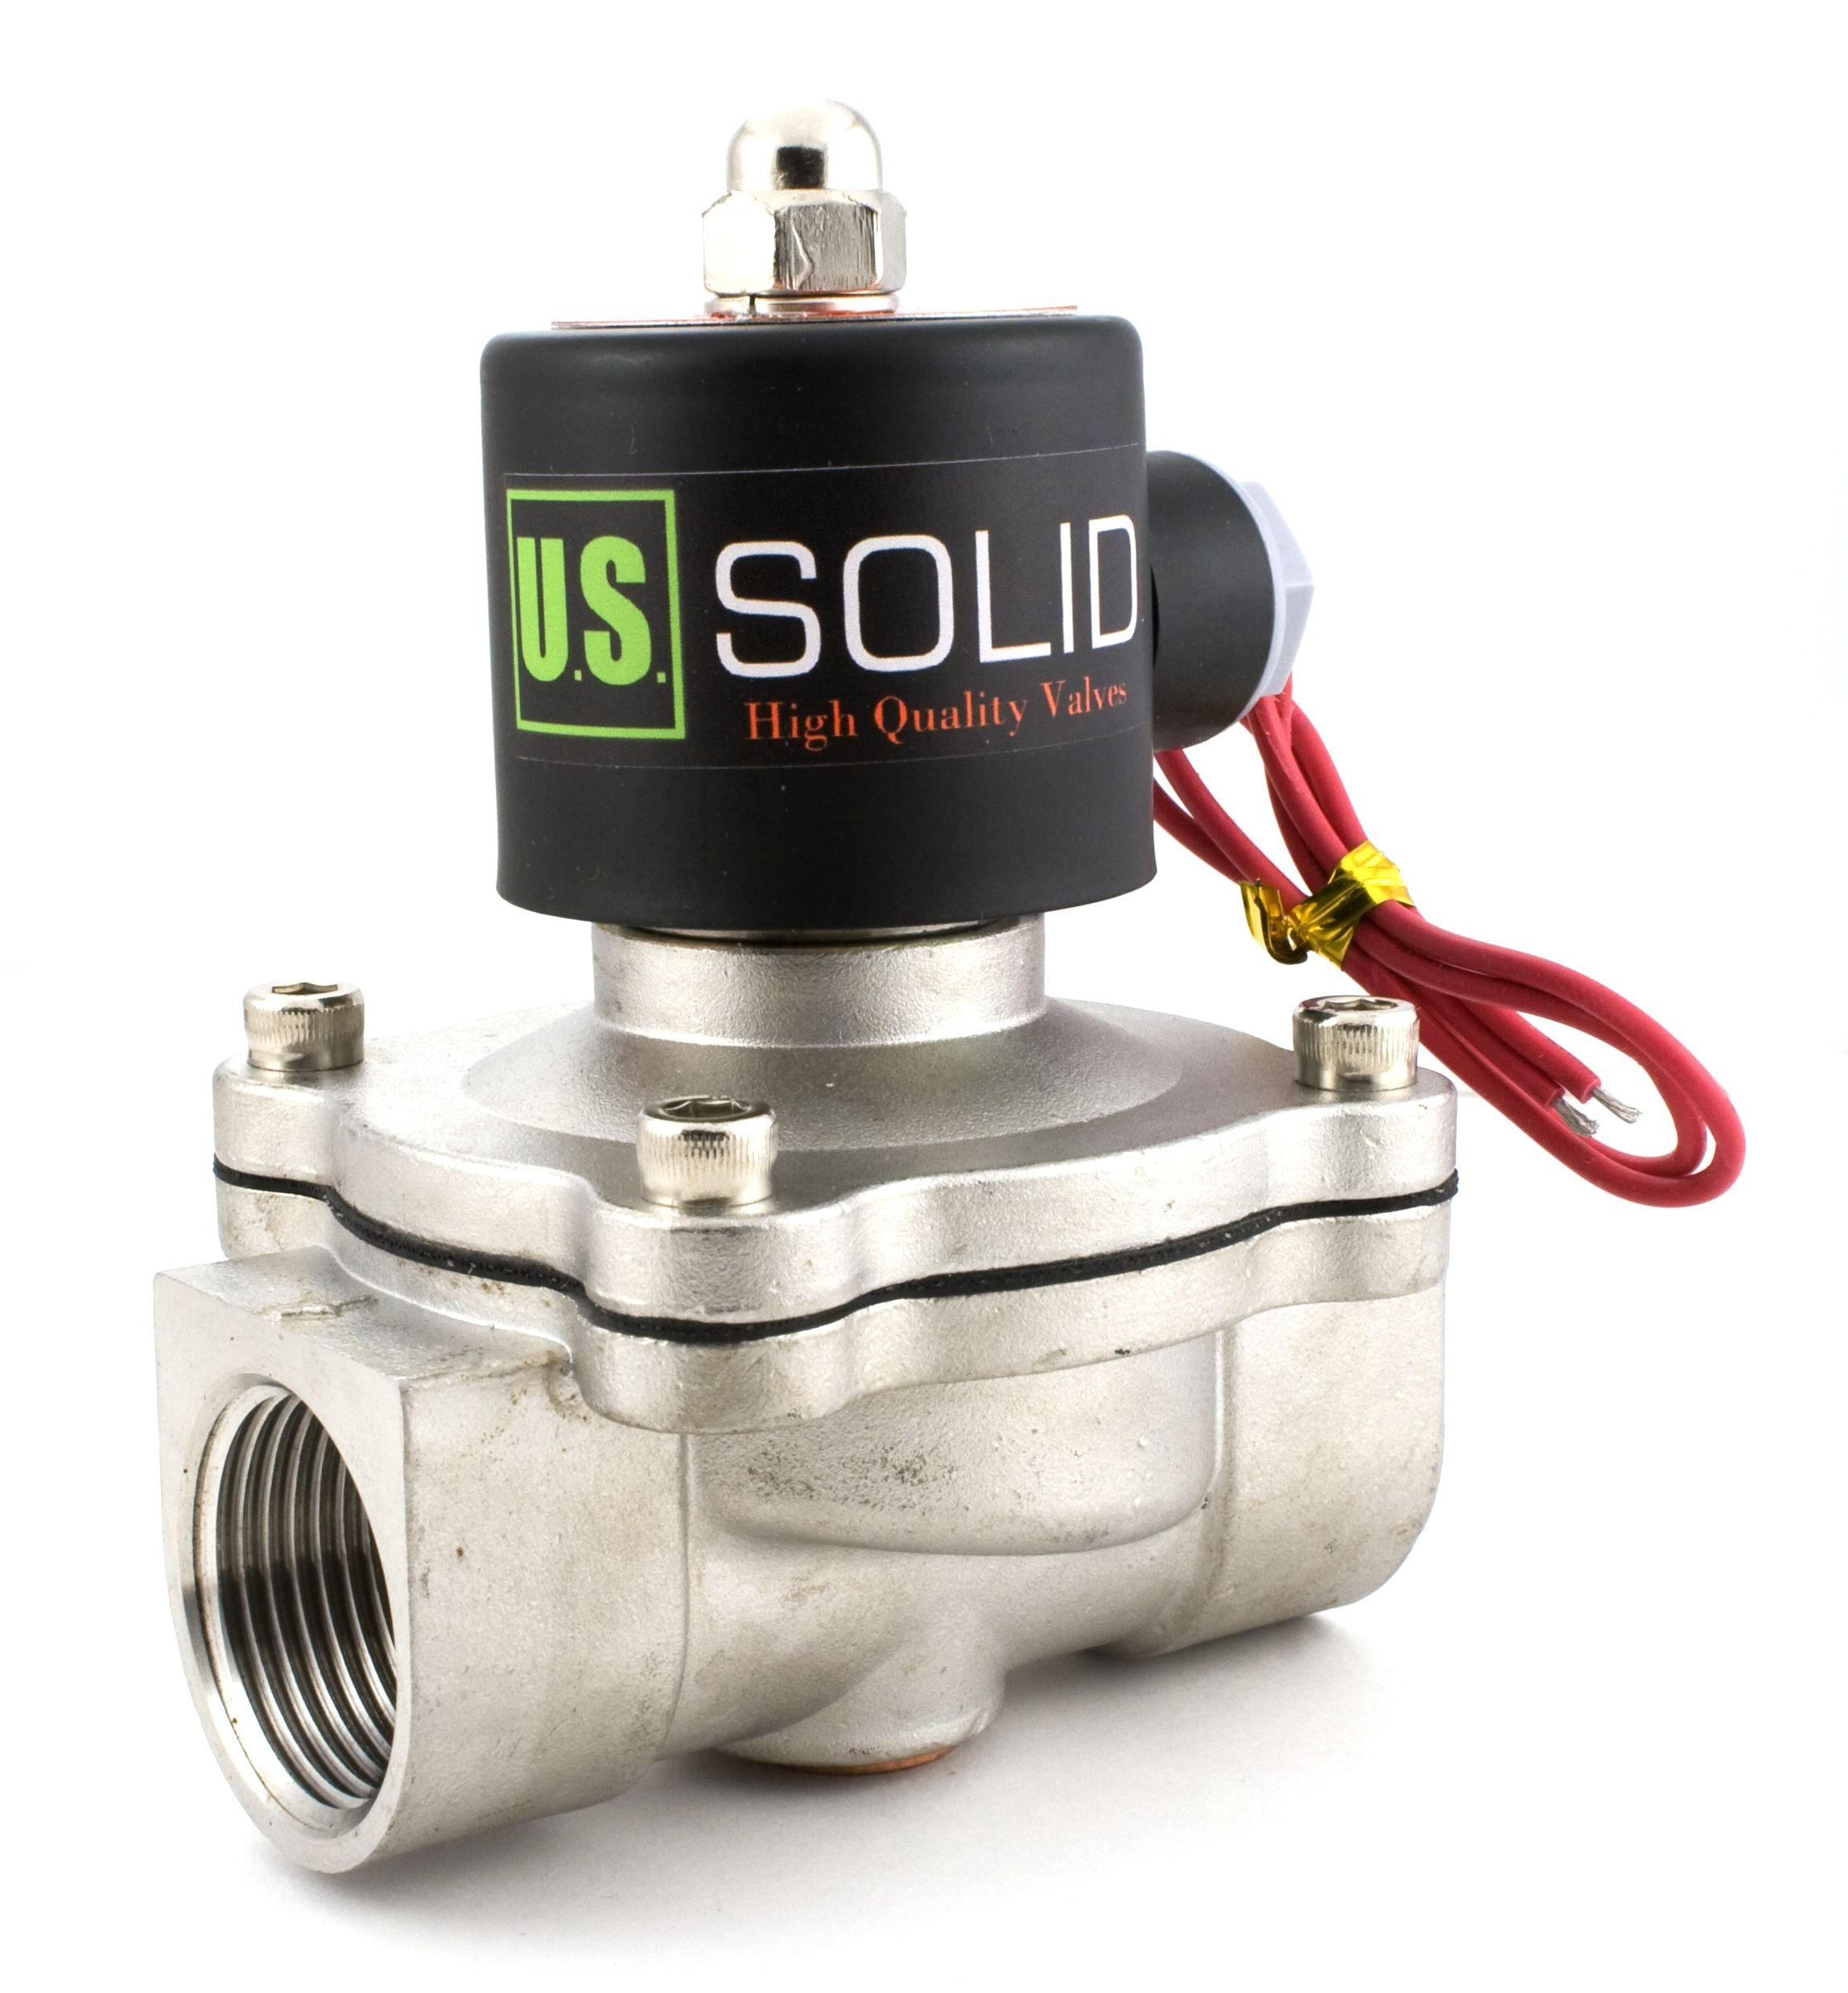 1'' Stainless Steel Electric Solenoid Valve 110VAC Normally Closed Air Water by U.S. Solid